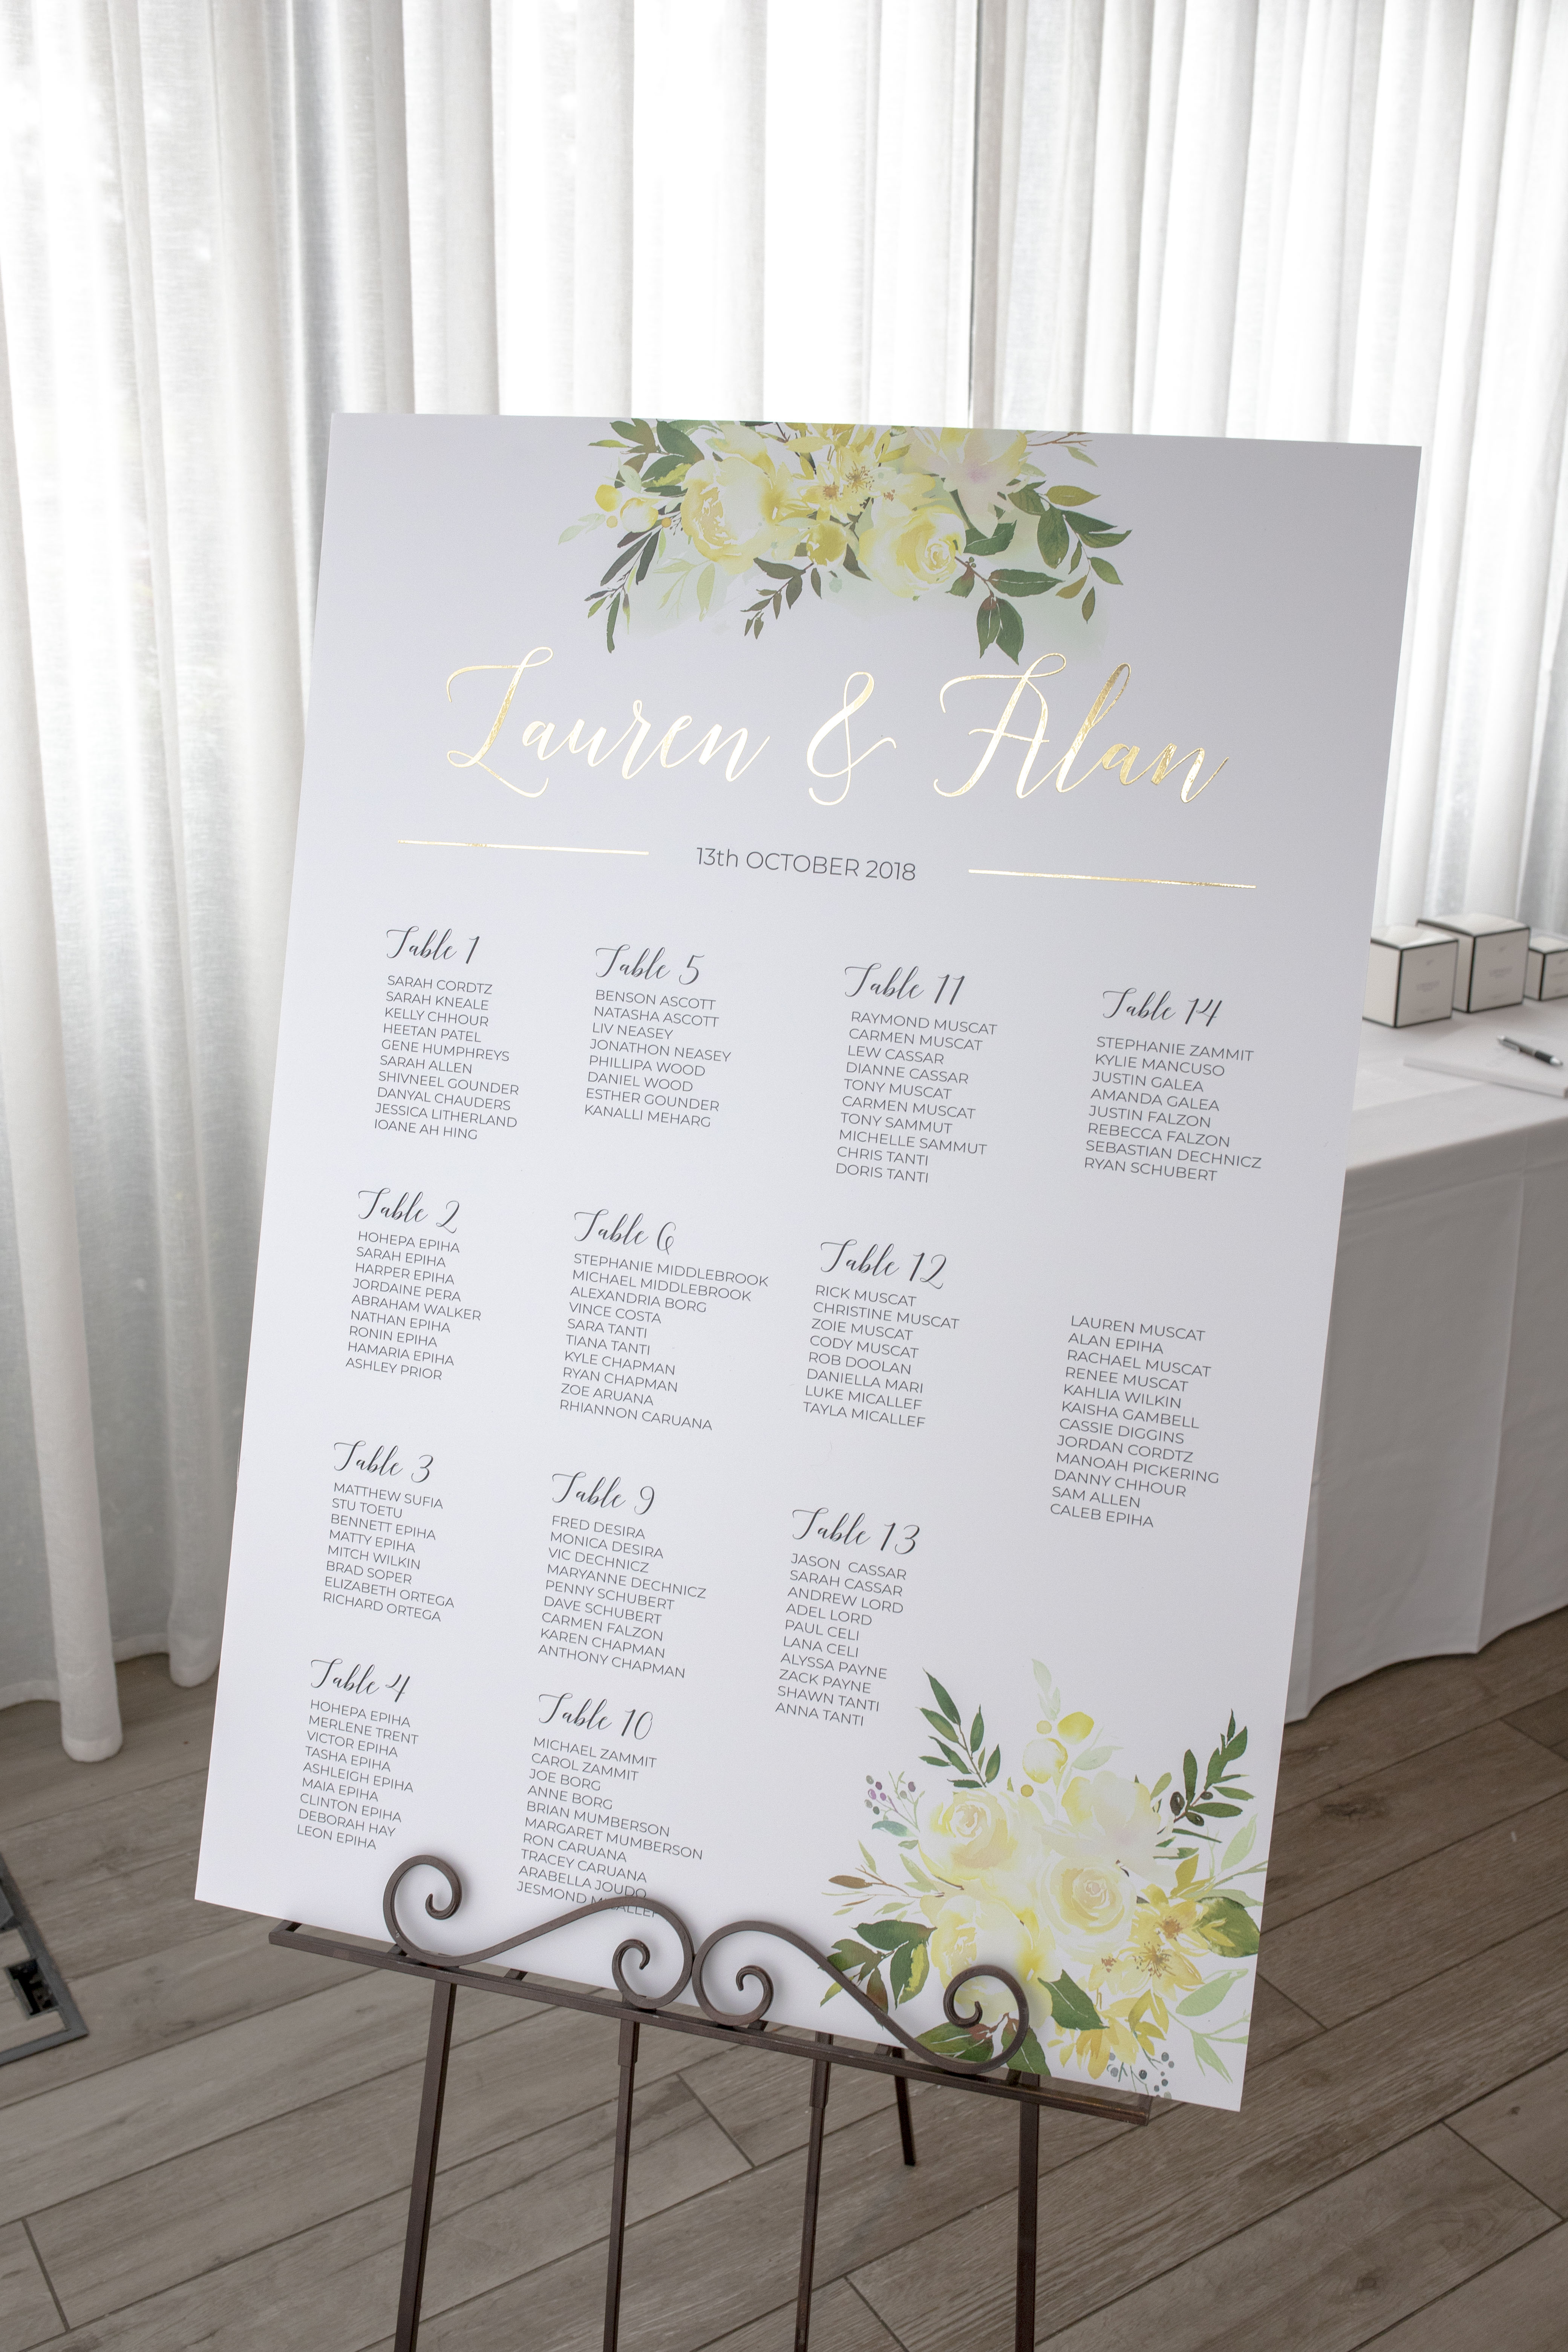 Lauren & Alan Seating Chart